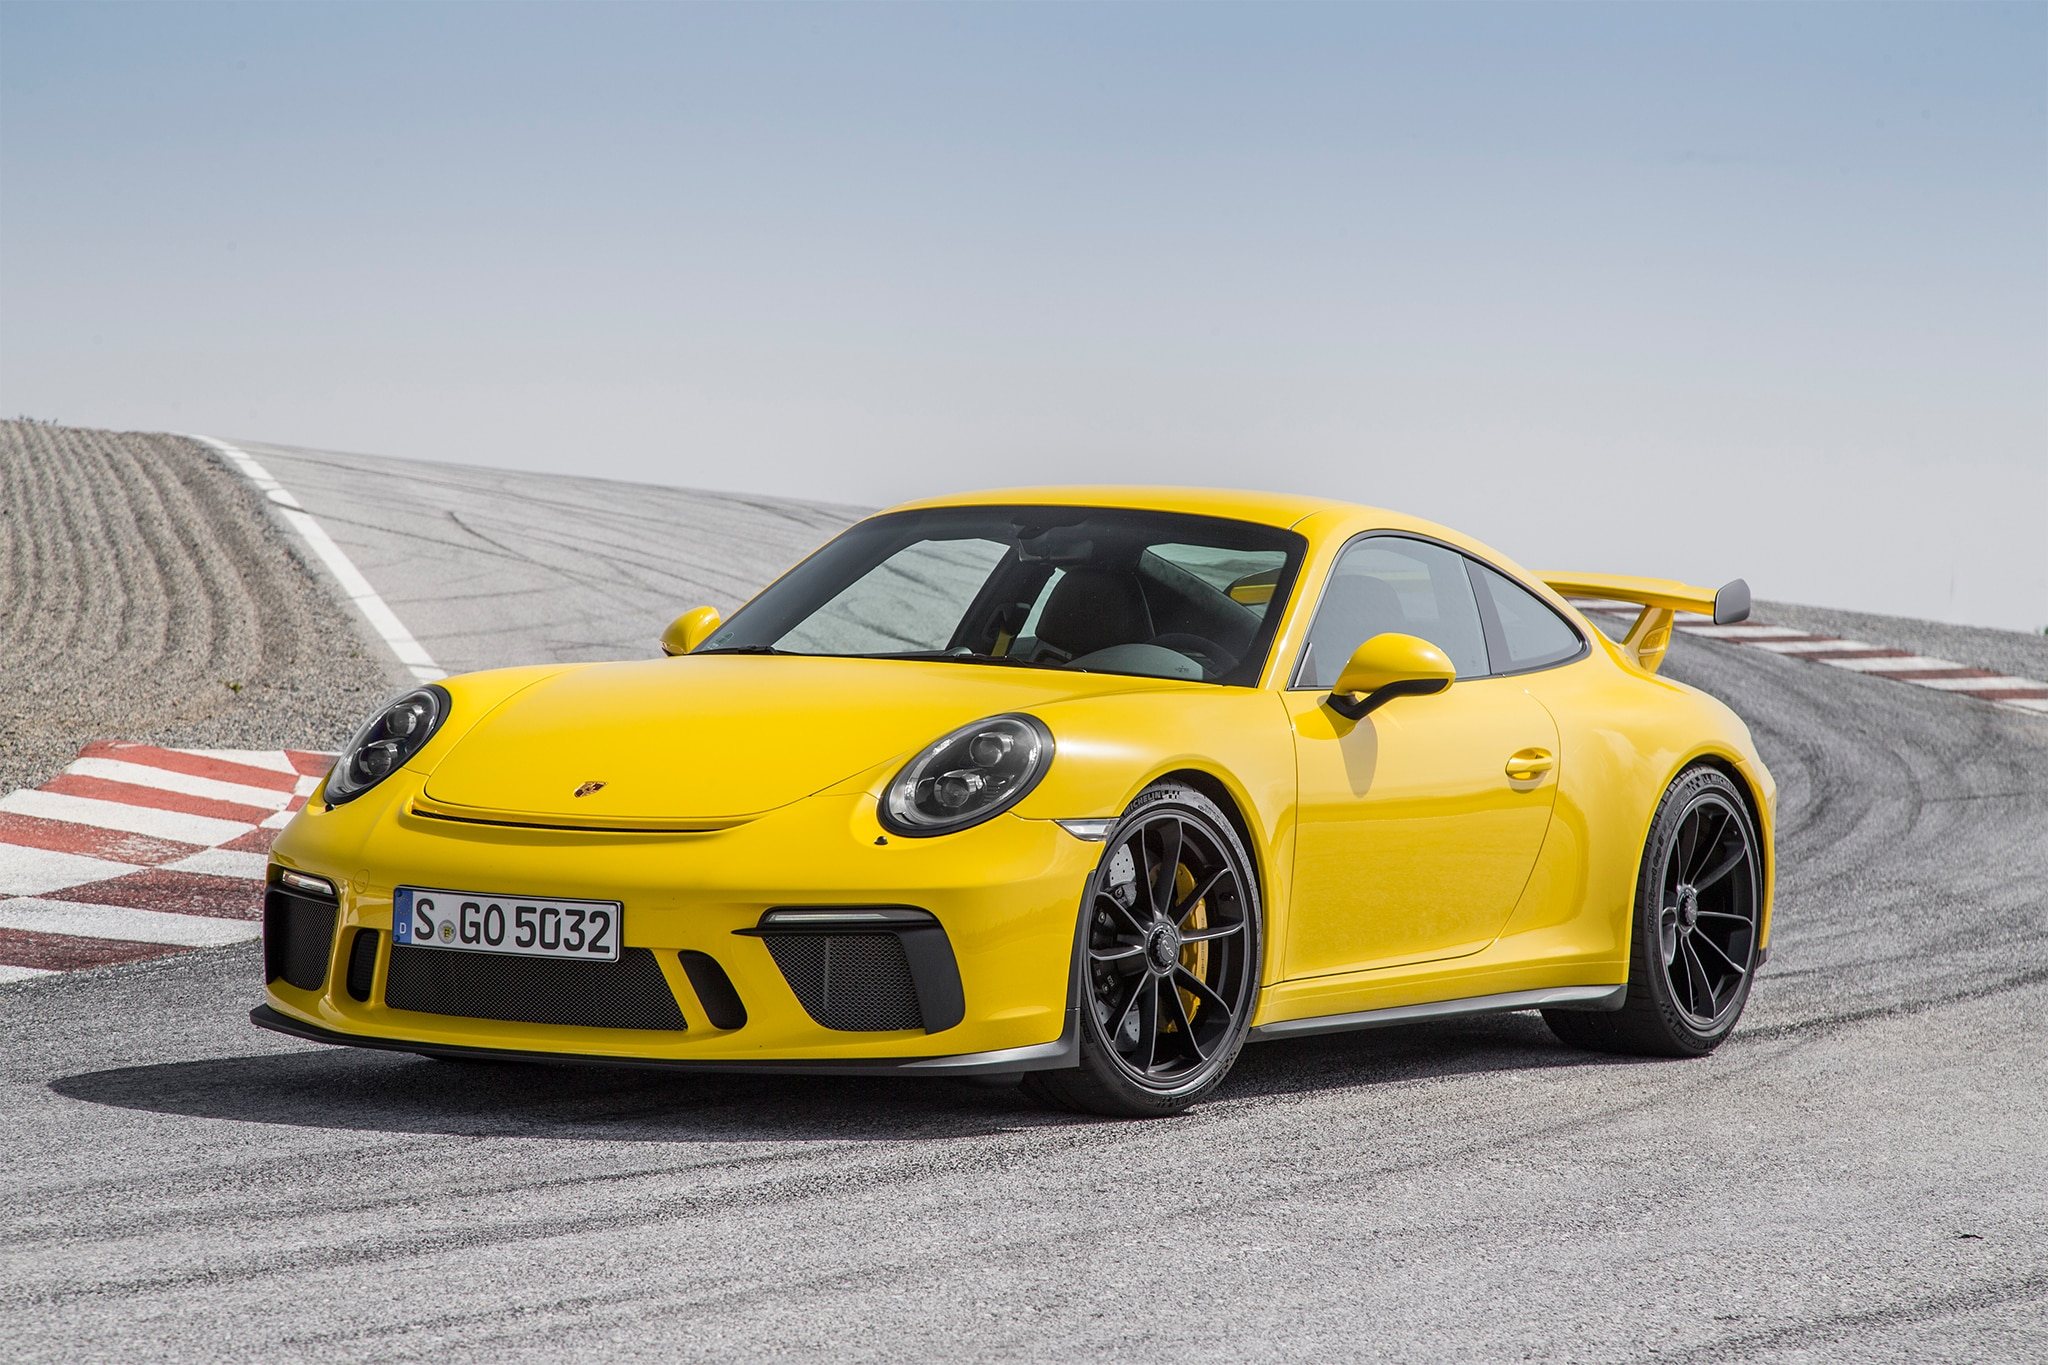 2018 porsche 911 gt3 first drive review automobile magazine. Black Bedroom Furniture Sets. Home Design Ideas